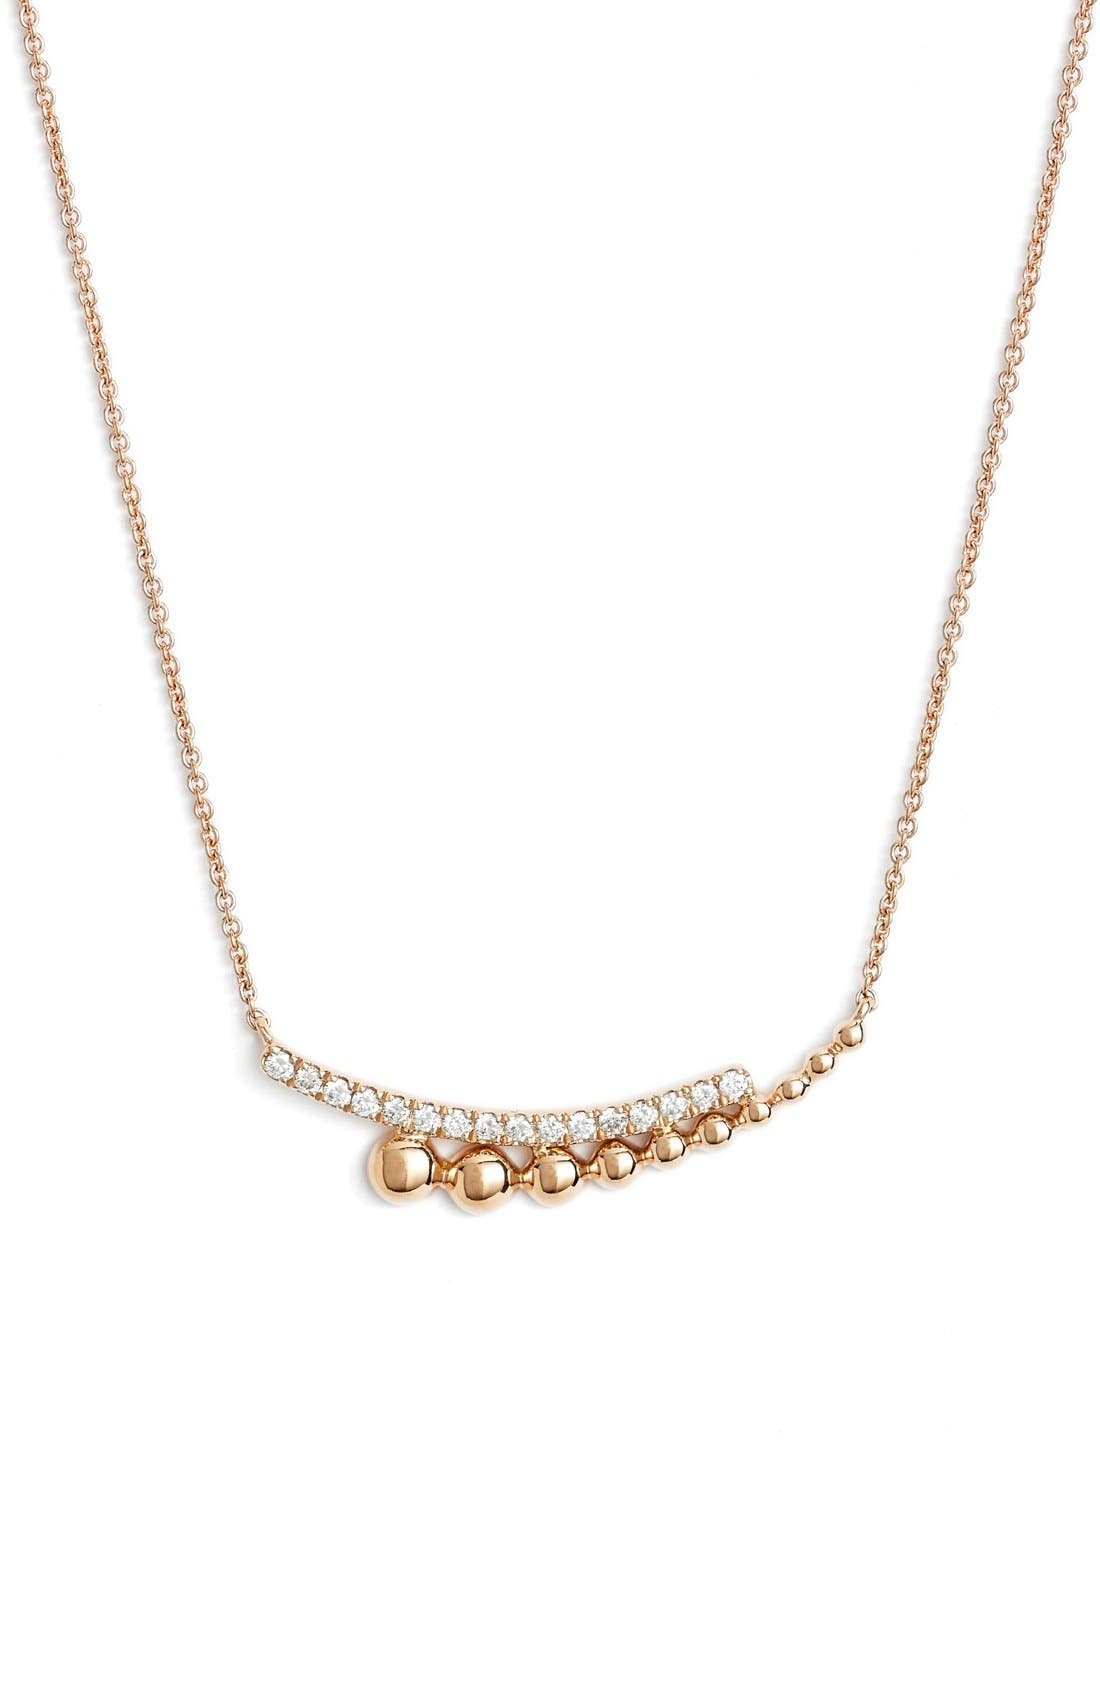 Poppy Rae Diamond Pendant Necklace,                         Main,                         color, Rose Gold